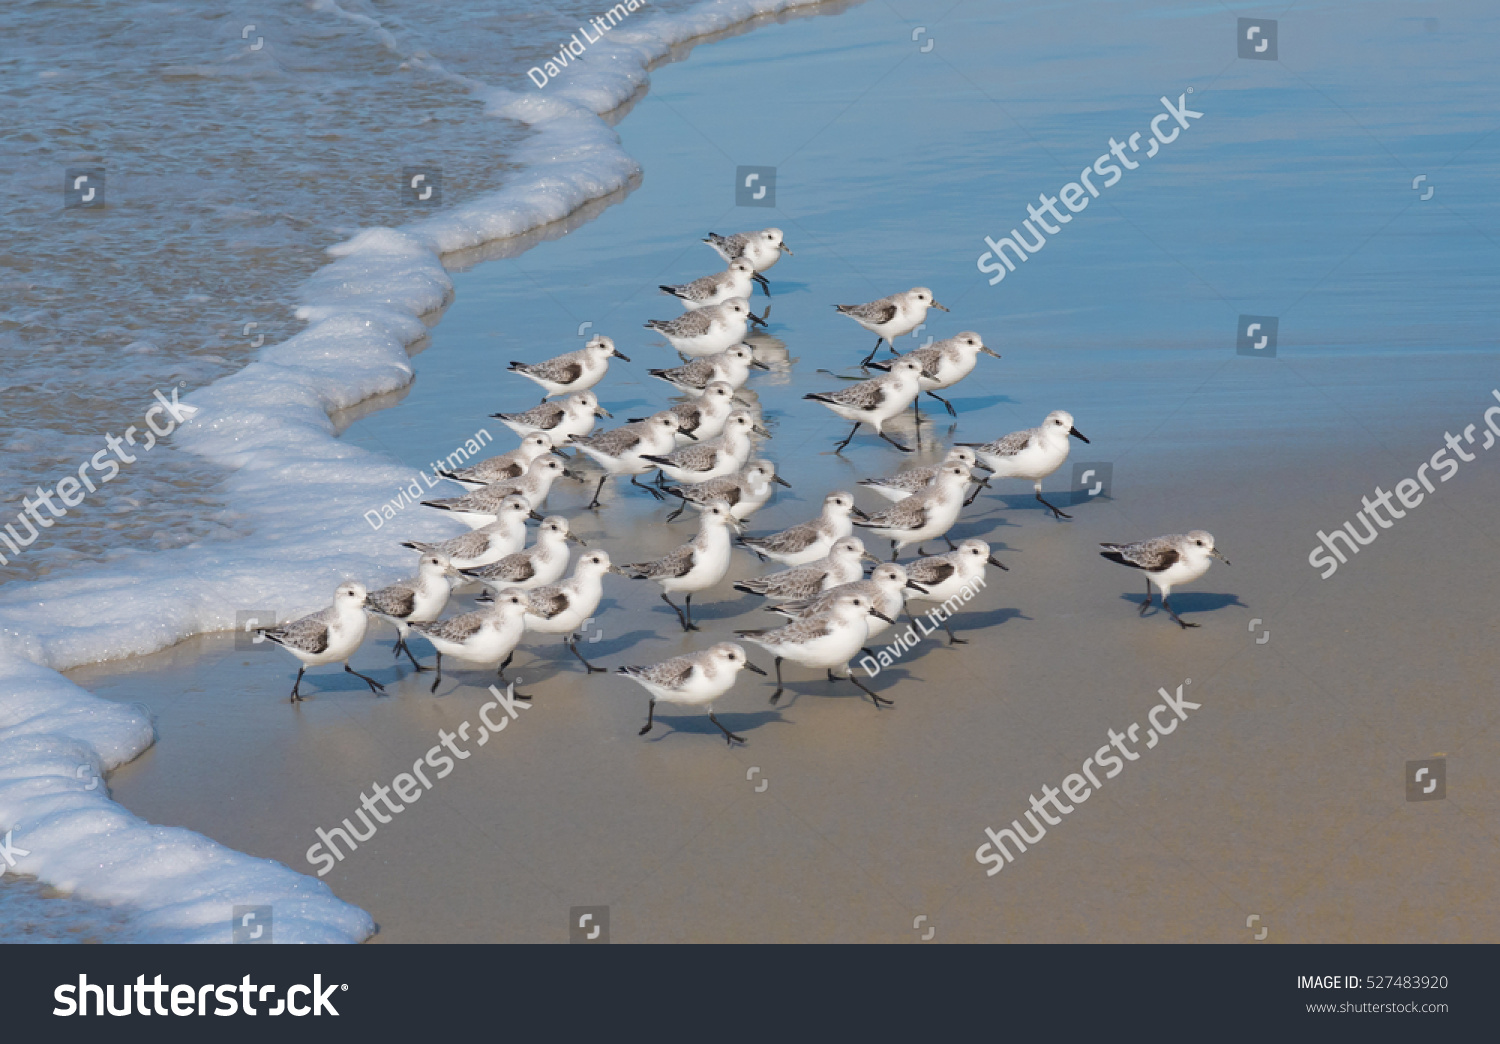 A flock of Western Snowy Plovers (Charadrius nivosus) run along the shore of the Monterey Peninsula in central California.  This threatened population nests in the nearby coastal sand dunes.